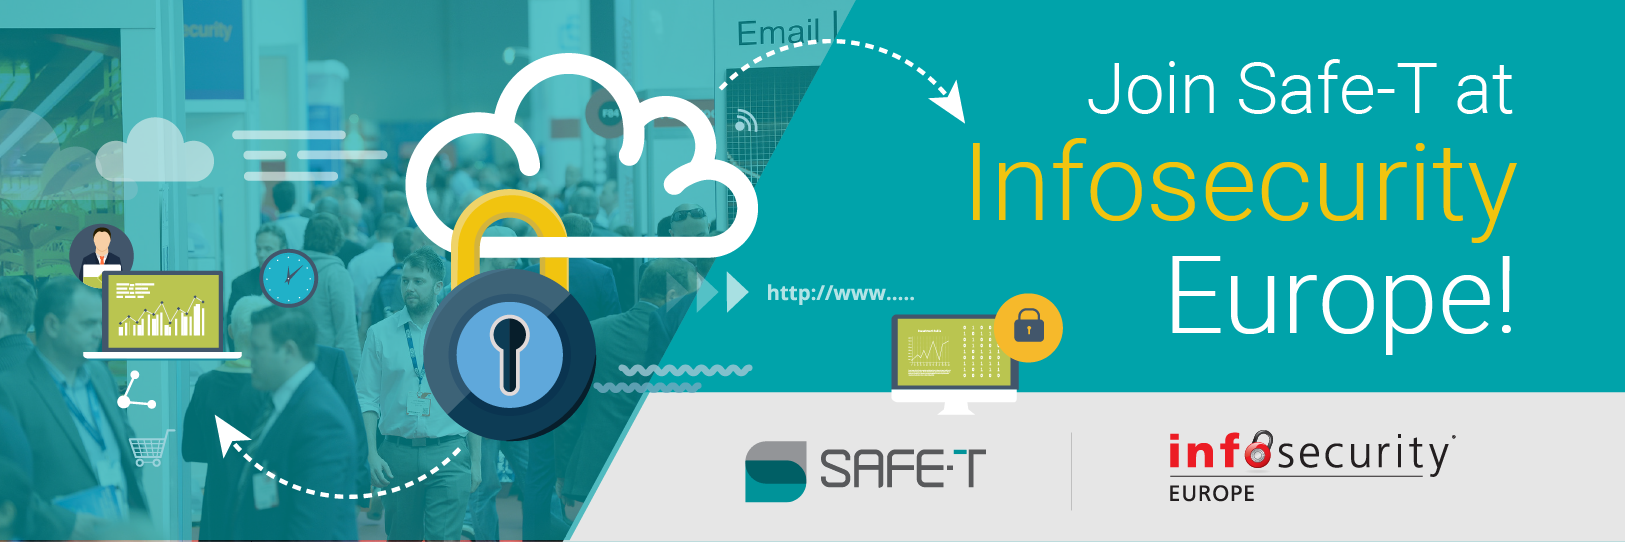 Join Safe-T at Infosecurity Europe